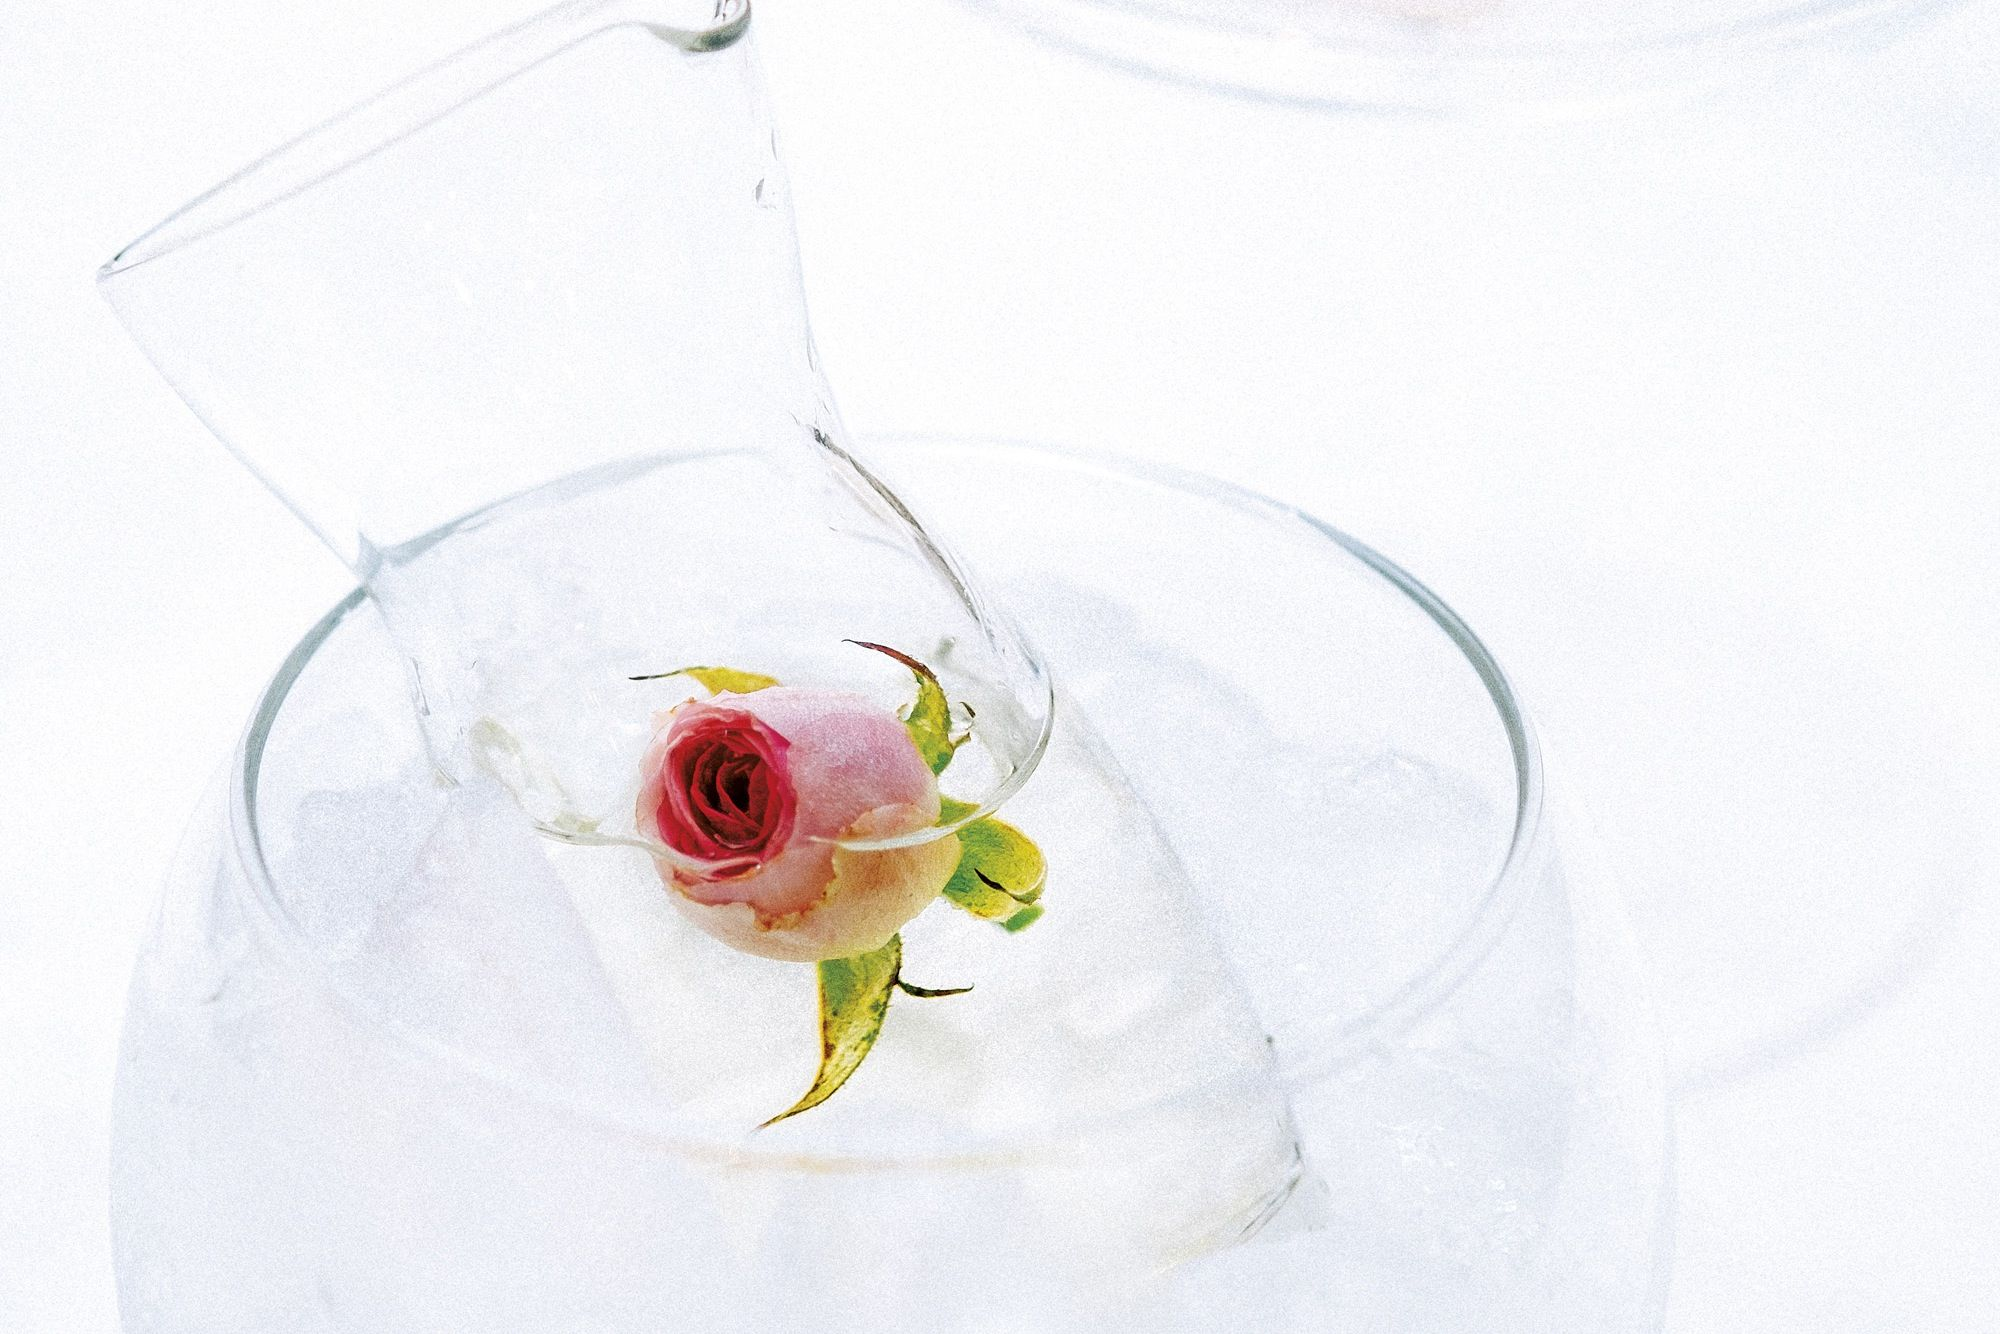 How to Make a Rose Garden Mocktail with Jasmine Tea and Lemonade